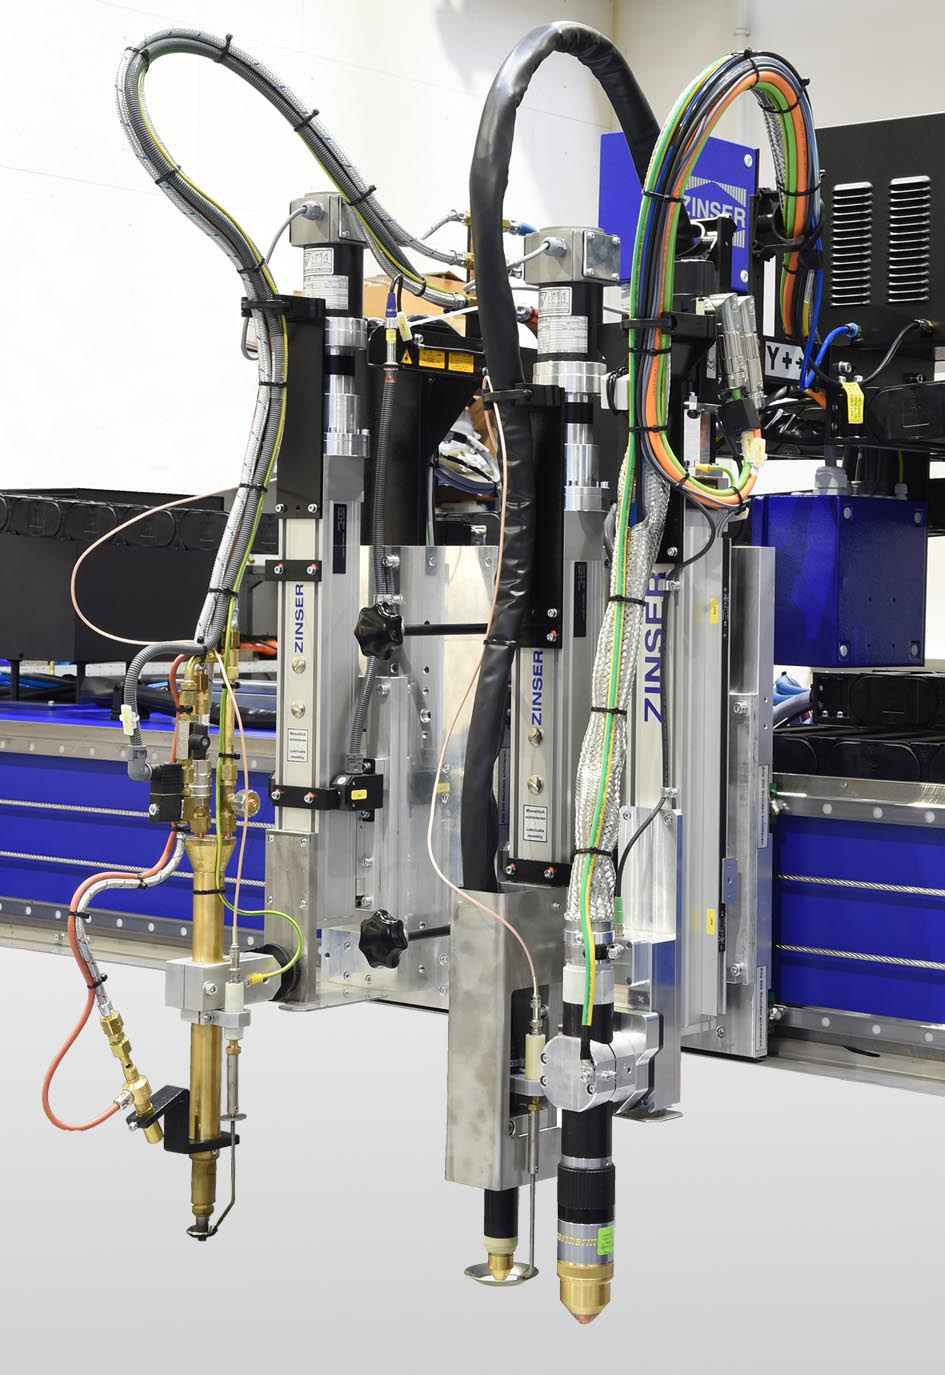 Equipment of a ZINSER 4025: oxy-fuel torch on the left, plasma torch with arc height sensing ZAC 5070 on the right. In addition, plasma marking system for docking to the plasma torch.